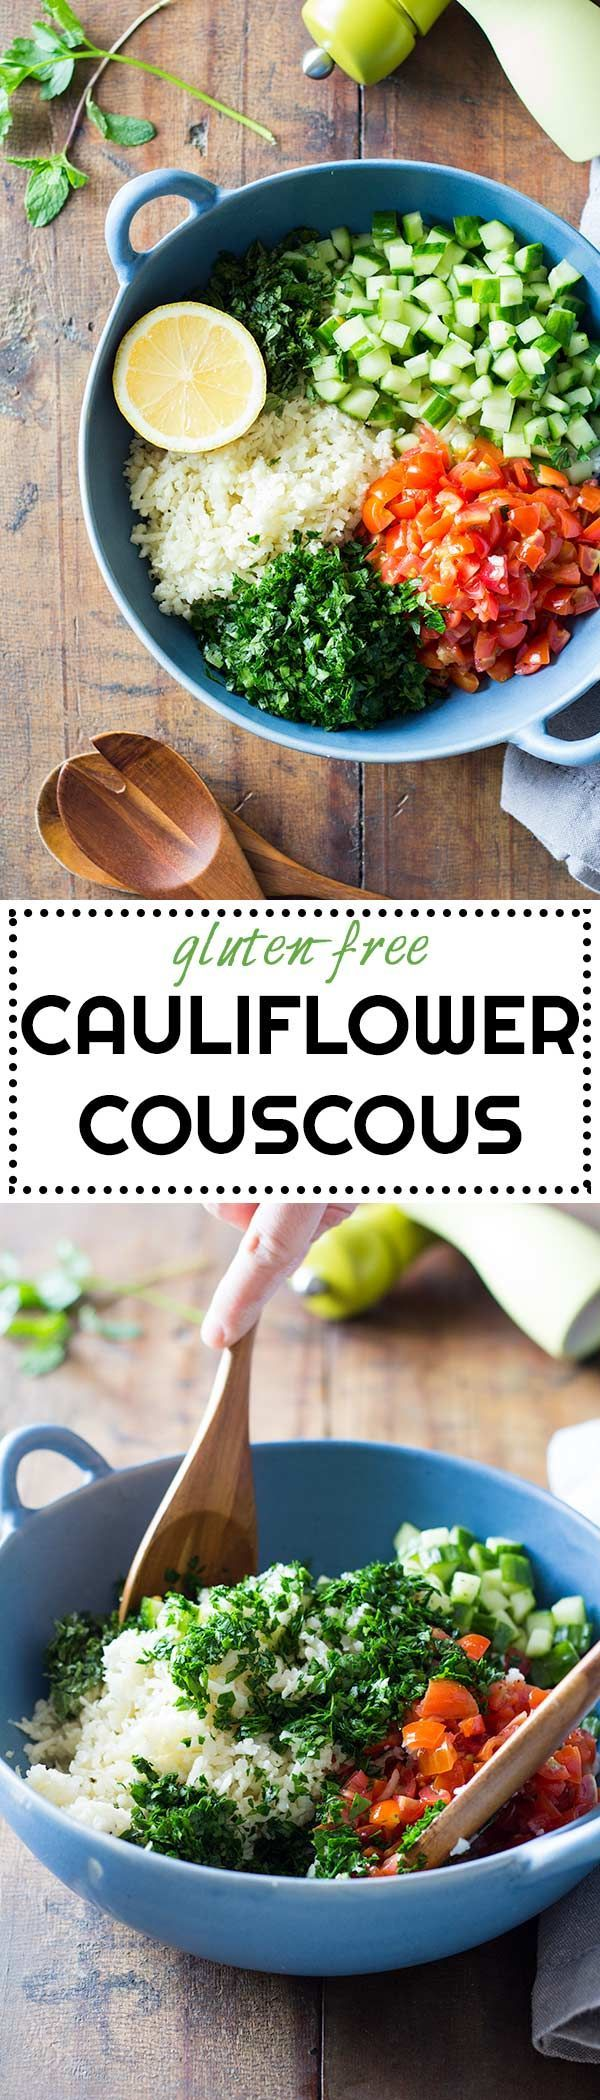 A gluten-free version of my beloved Lebanese tabbouleh: Cauliflower Couscous. An extraordinary way to add in more veggies into your diet and spice them up in a delicious way. via /greenhealthycoo/